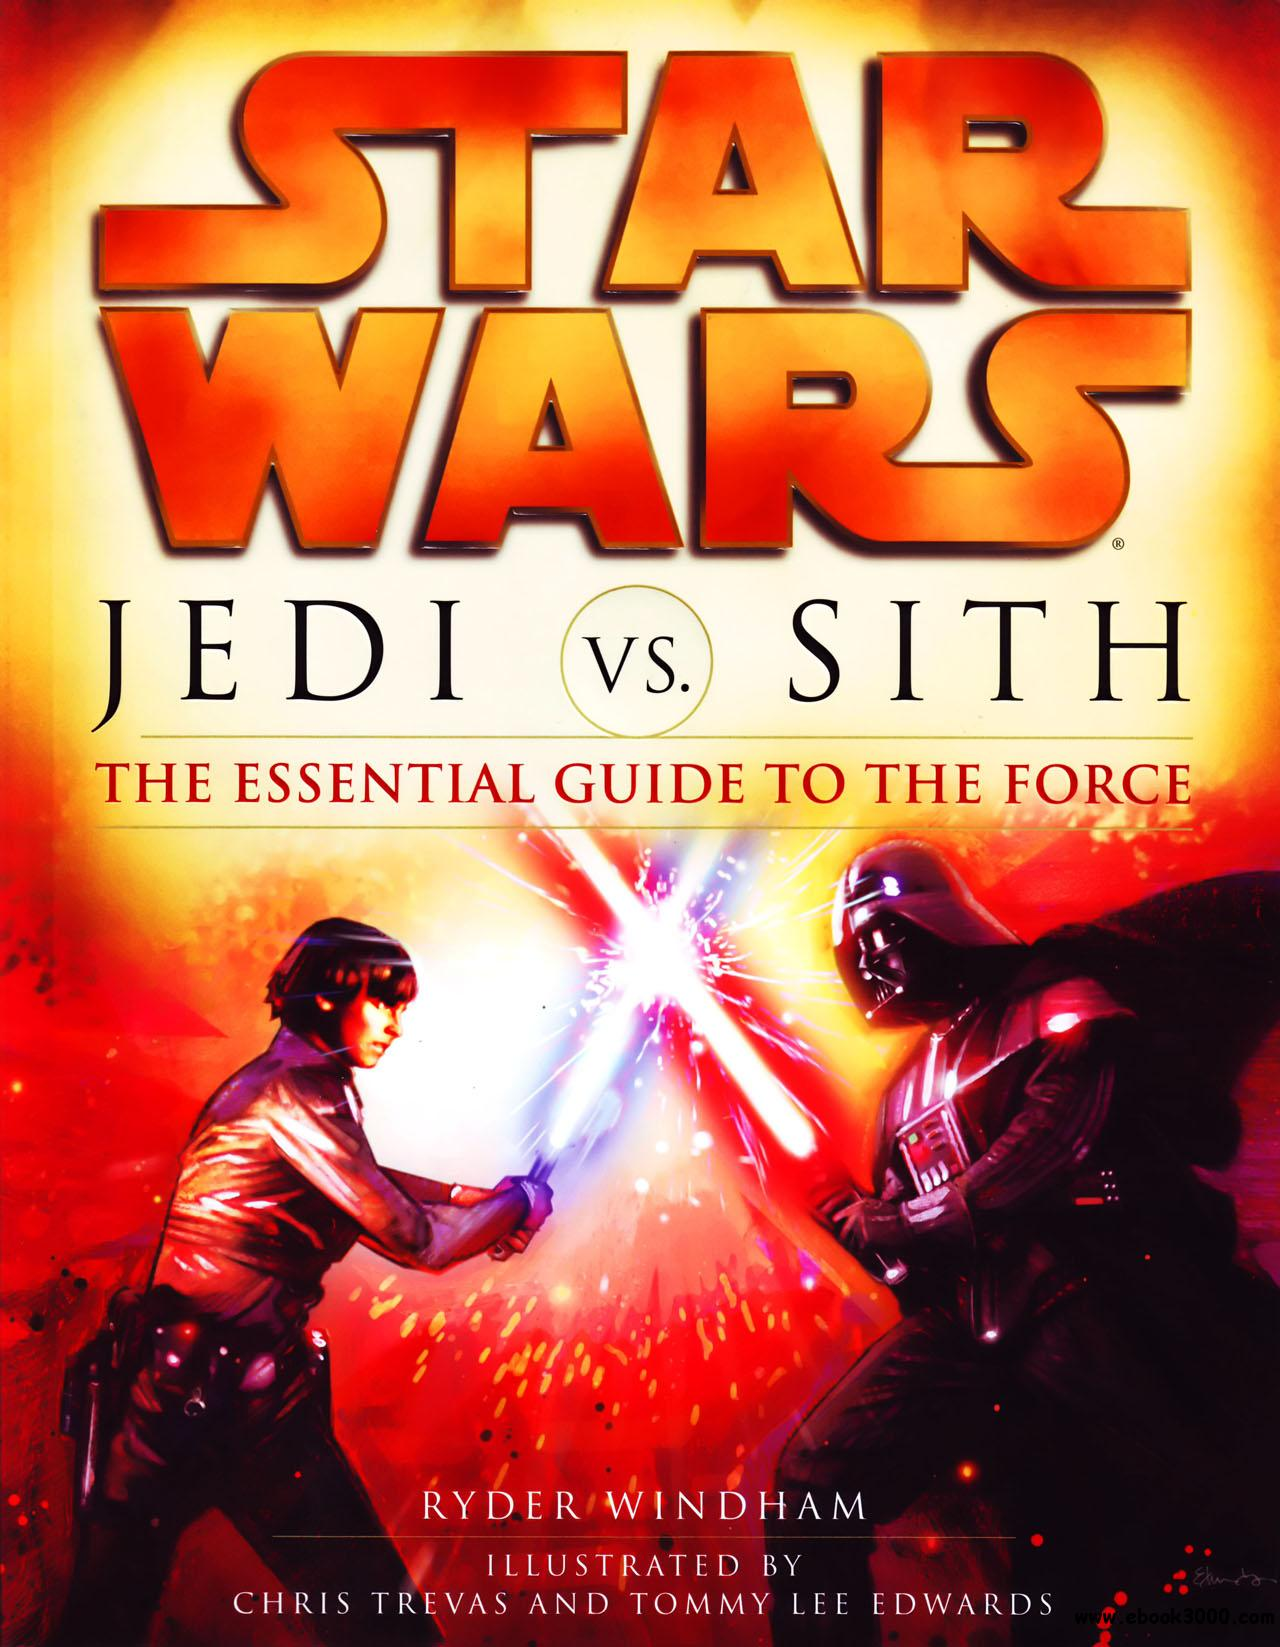 Star Wars - Jedi Vs. Sith - Essential Guide to the Force (2007) free download